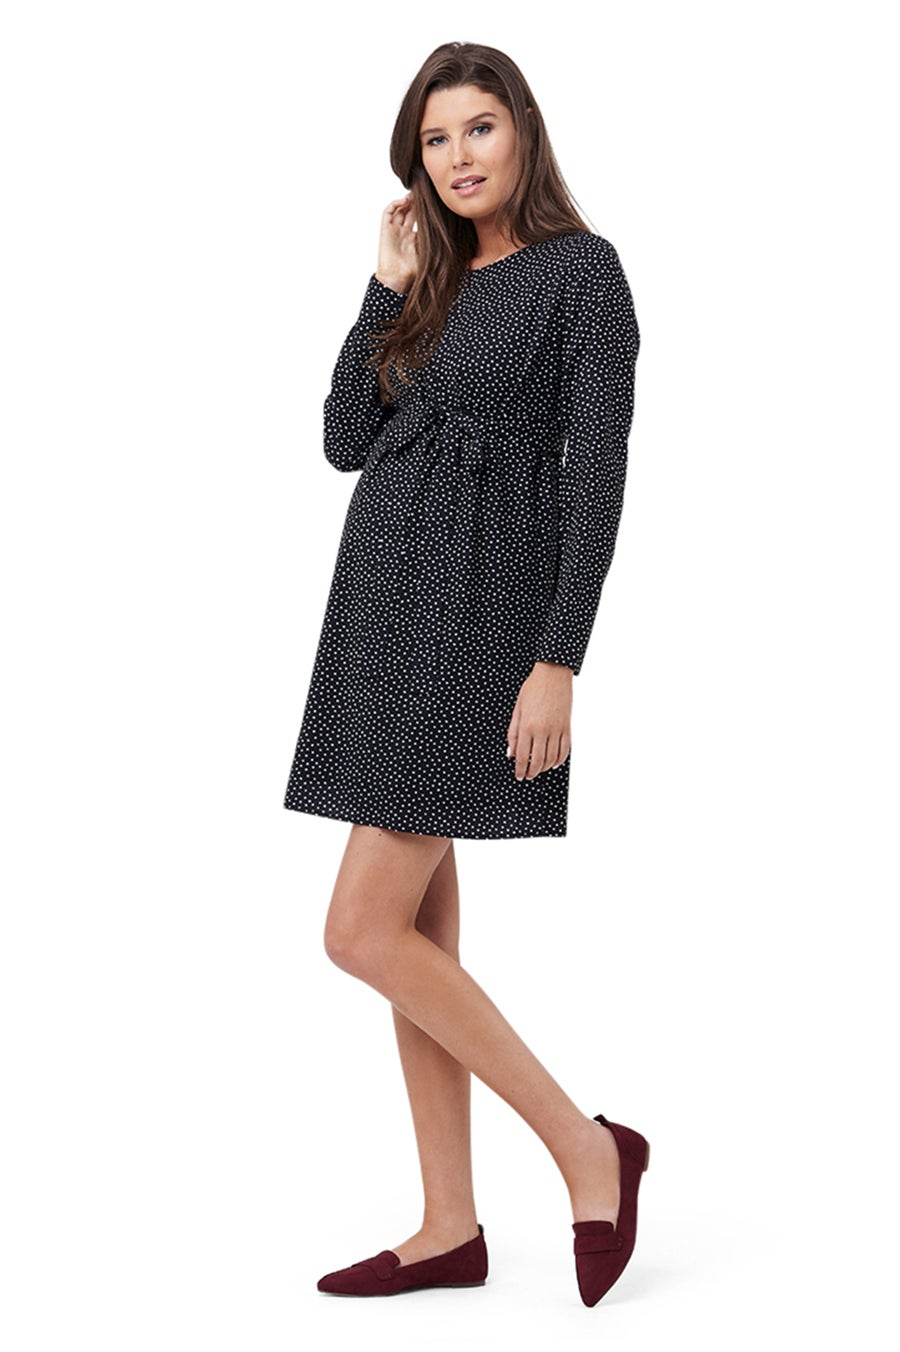 Image of SPOT TUNIC DRESS CLP $42.800